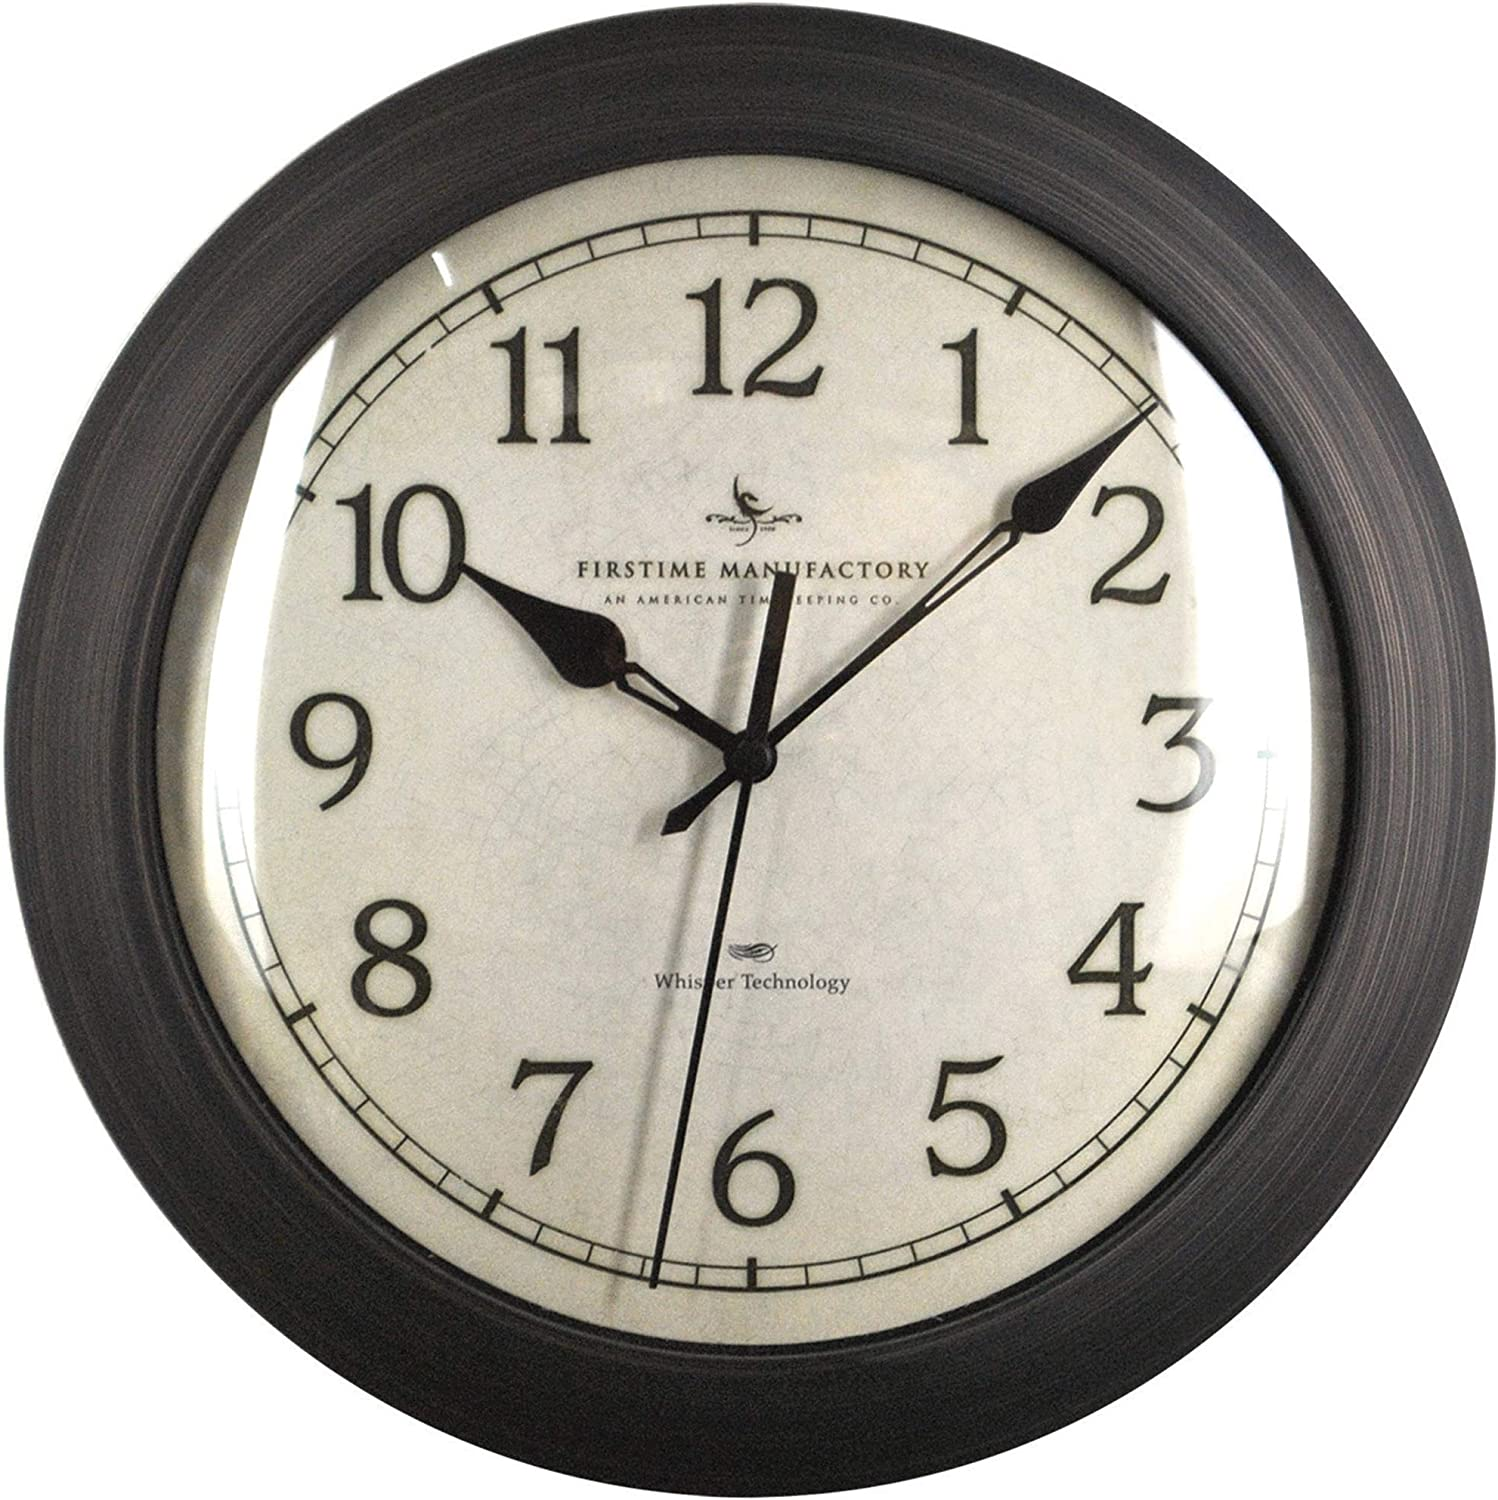 FIRSTIME MANUFACTORY WHITE ALLEGRI OUT DOOR//INDOOR WALL CLOCK